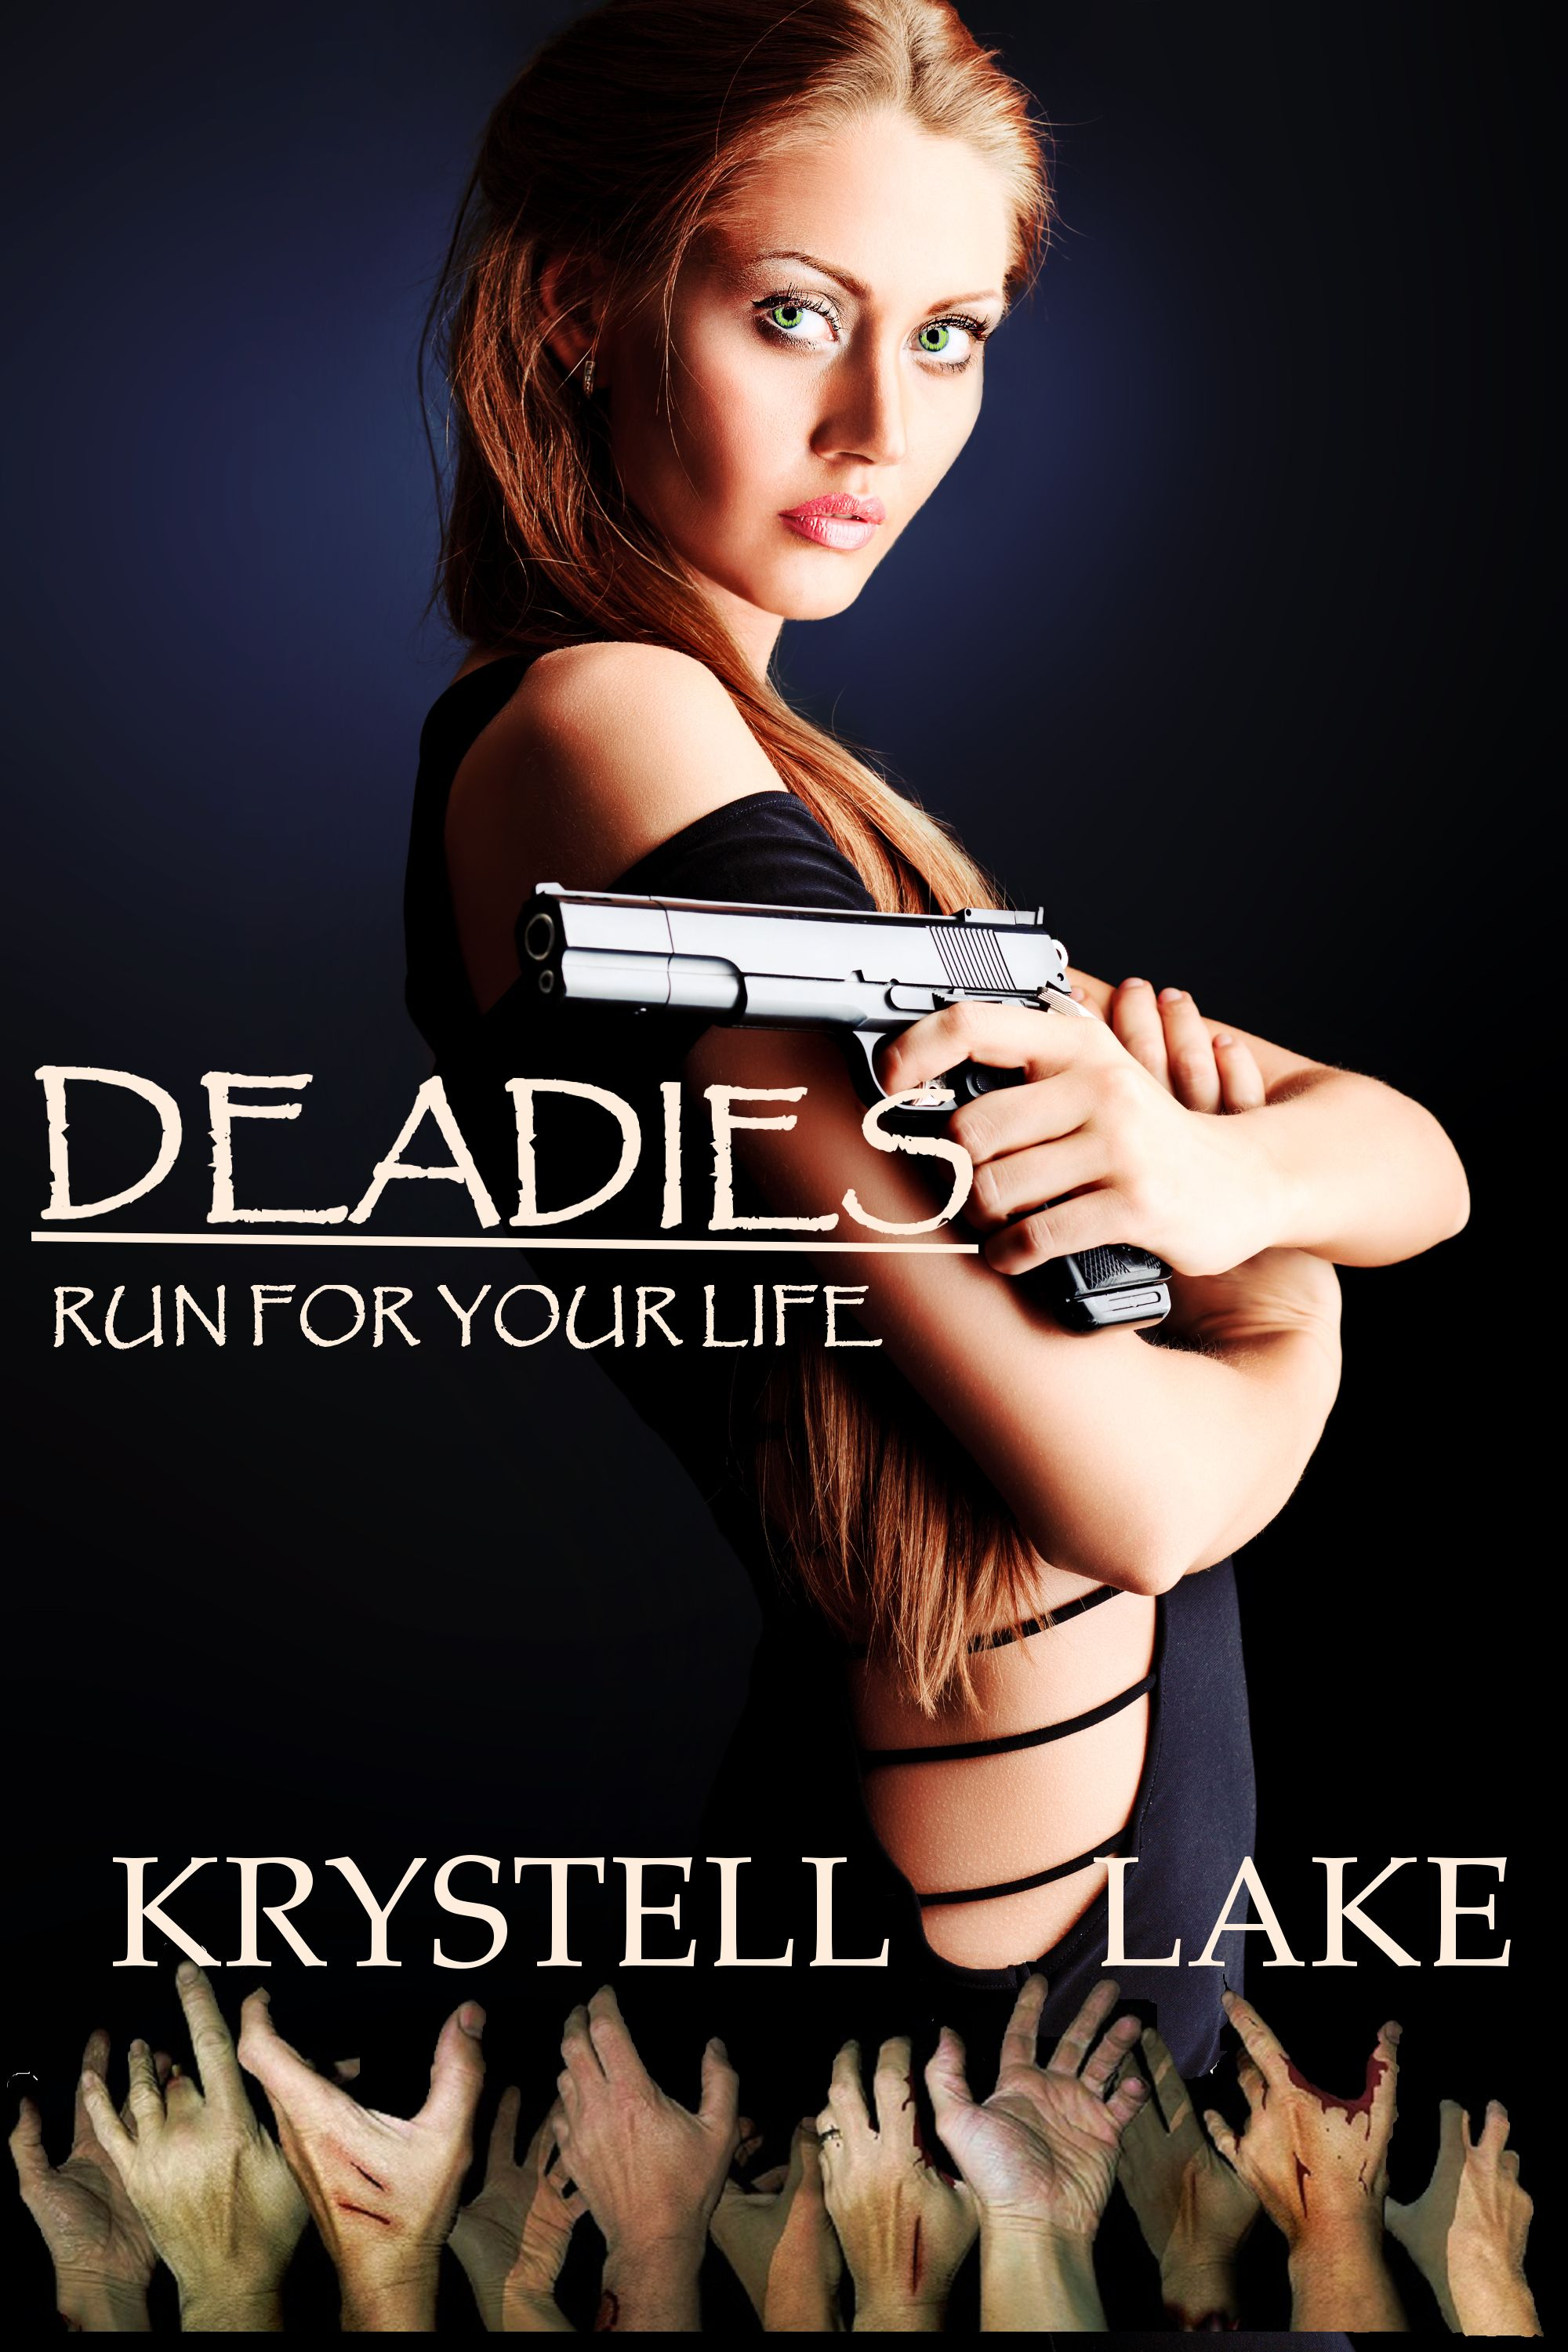 Deadies: Run For Your Life. This is the first book in the popular zombie